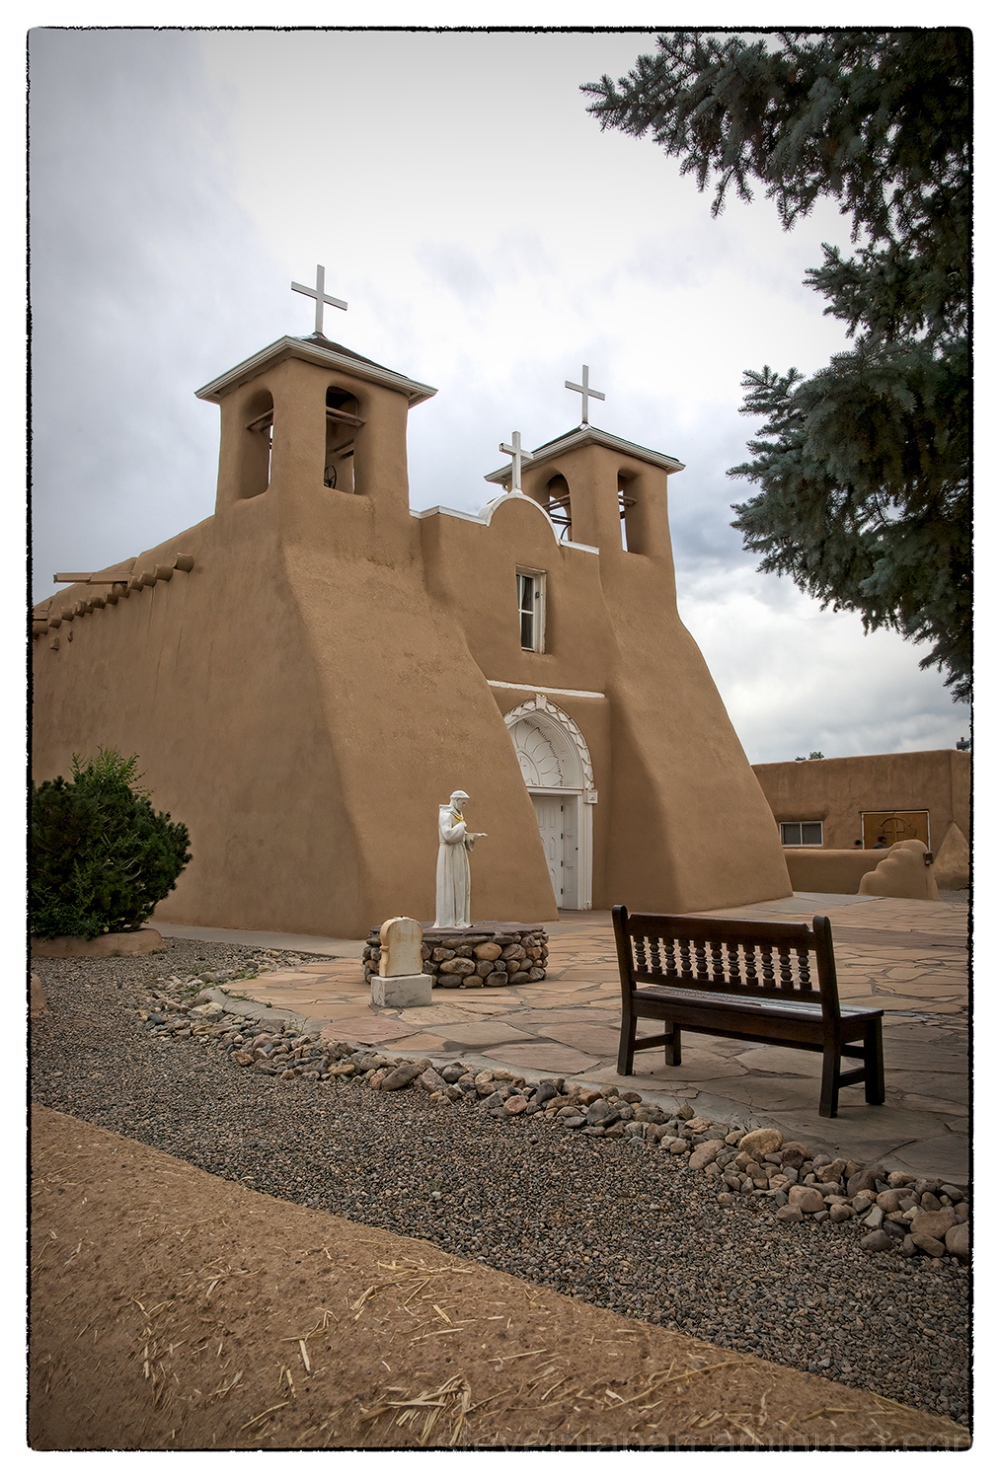 A church in Ranchos de Taos, New Mexico.